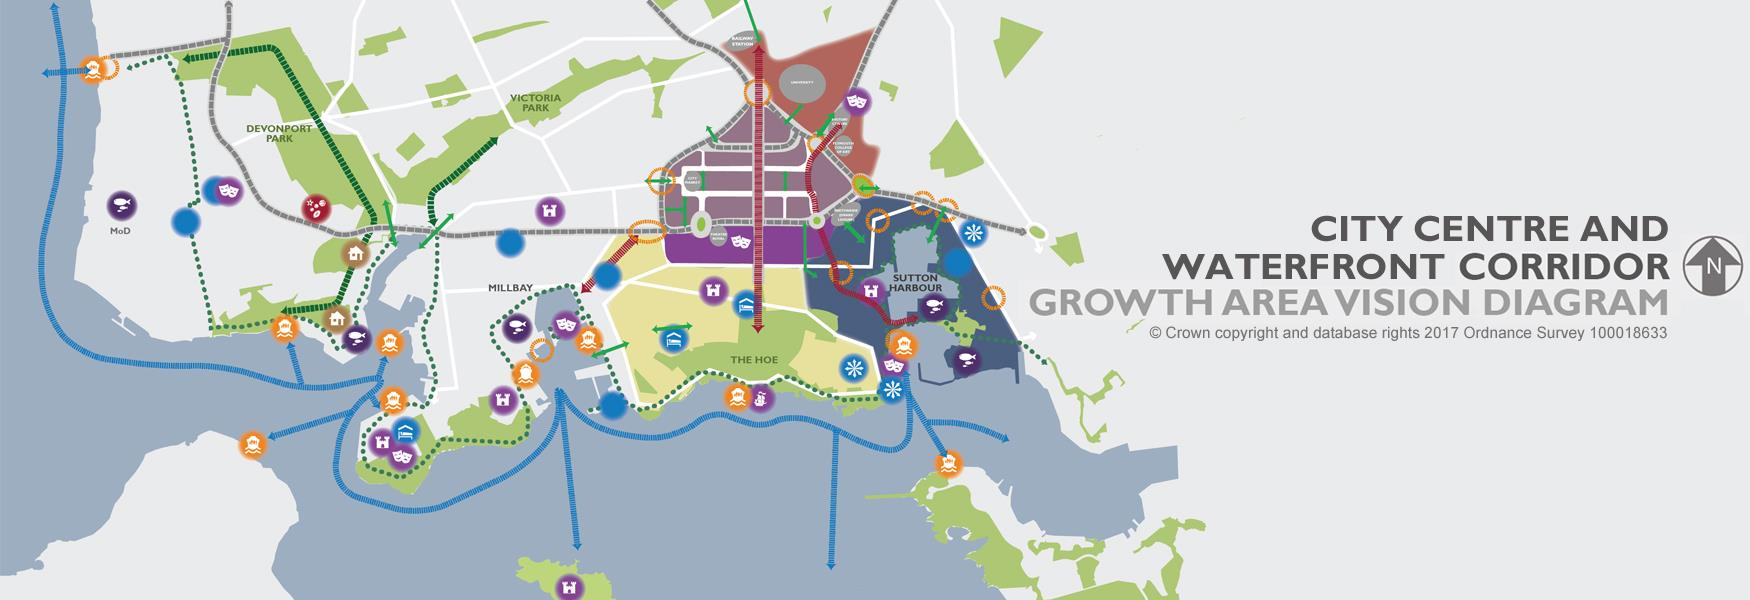 City centre and waterfront growth corridor growth area vision diagram